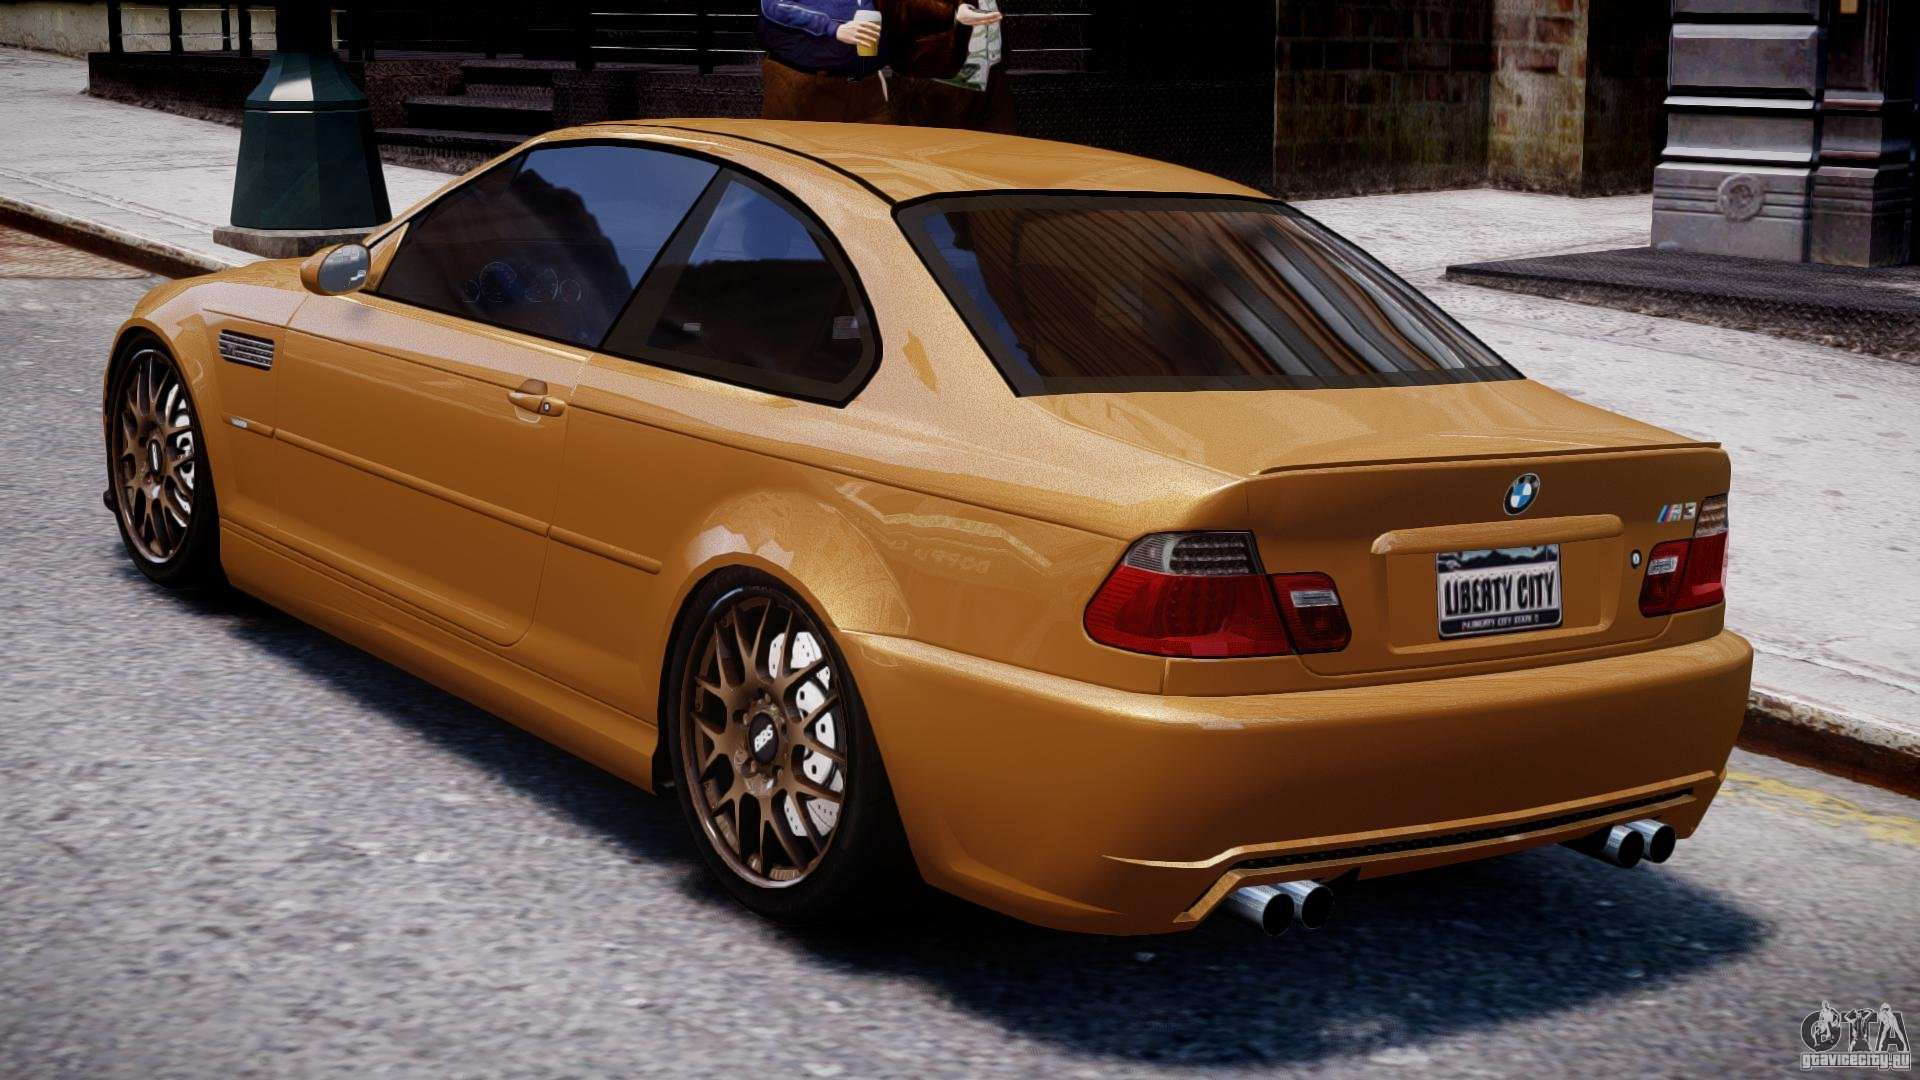 BMW M3 E46 Tuning 2001 v2.0 for GTA 4